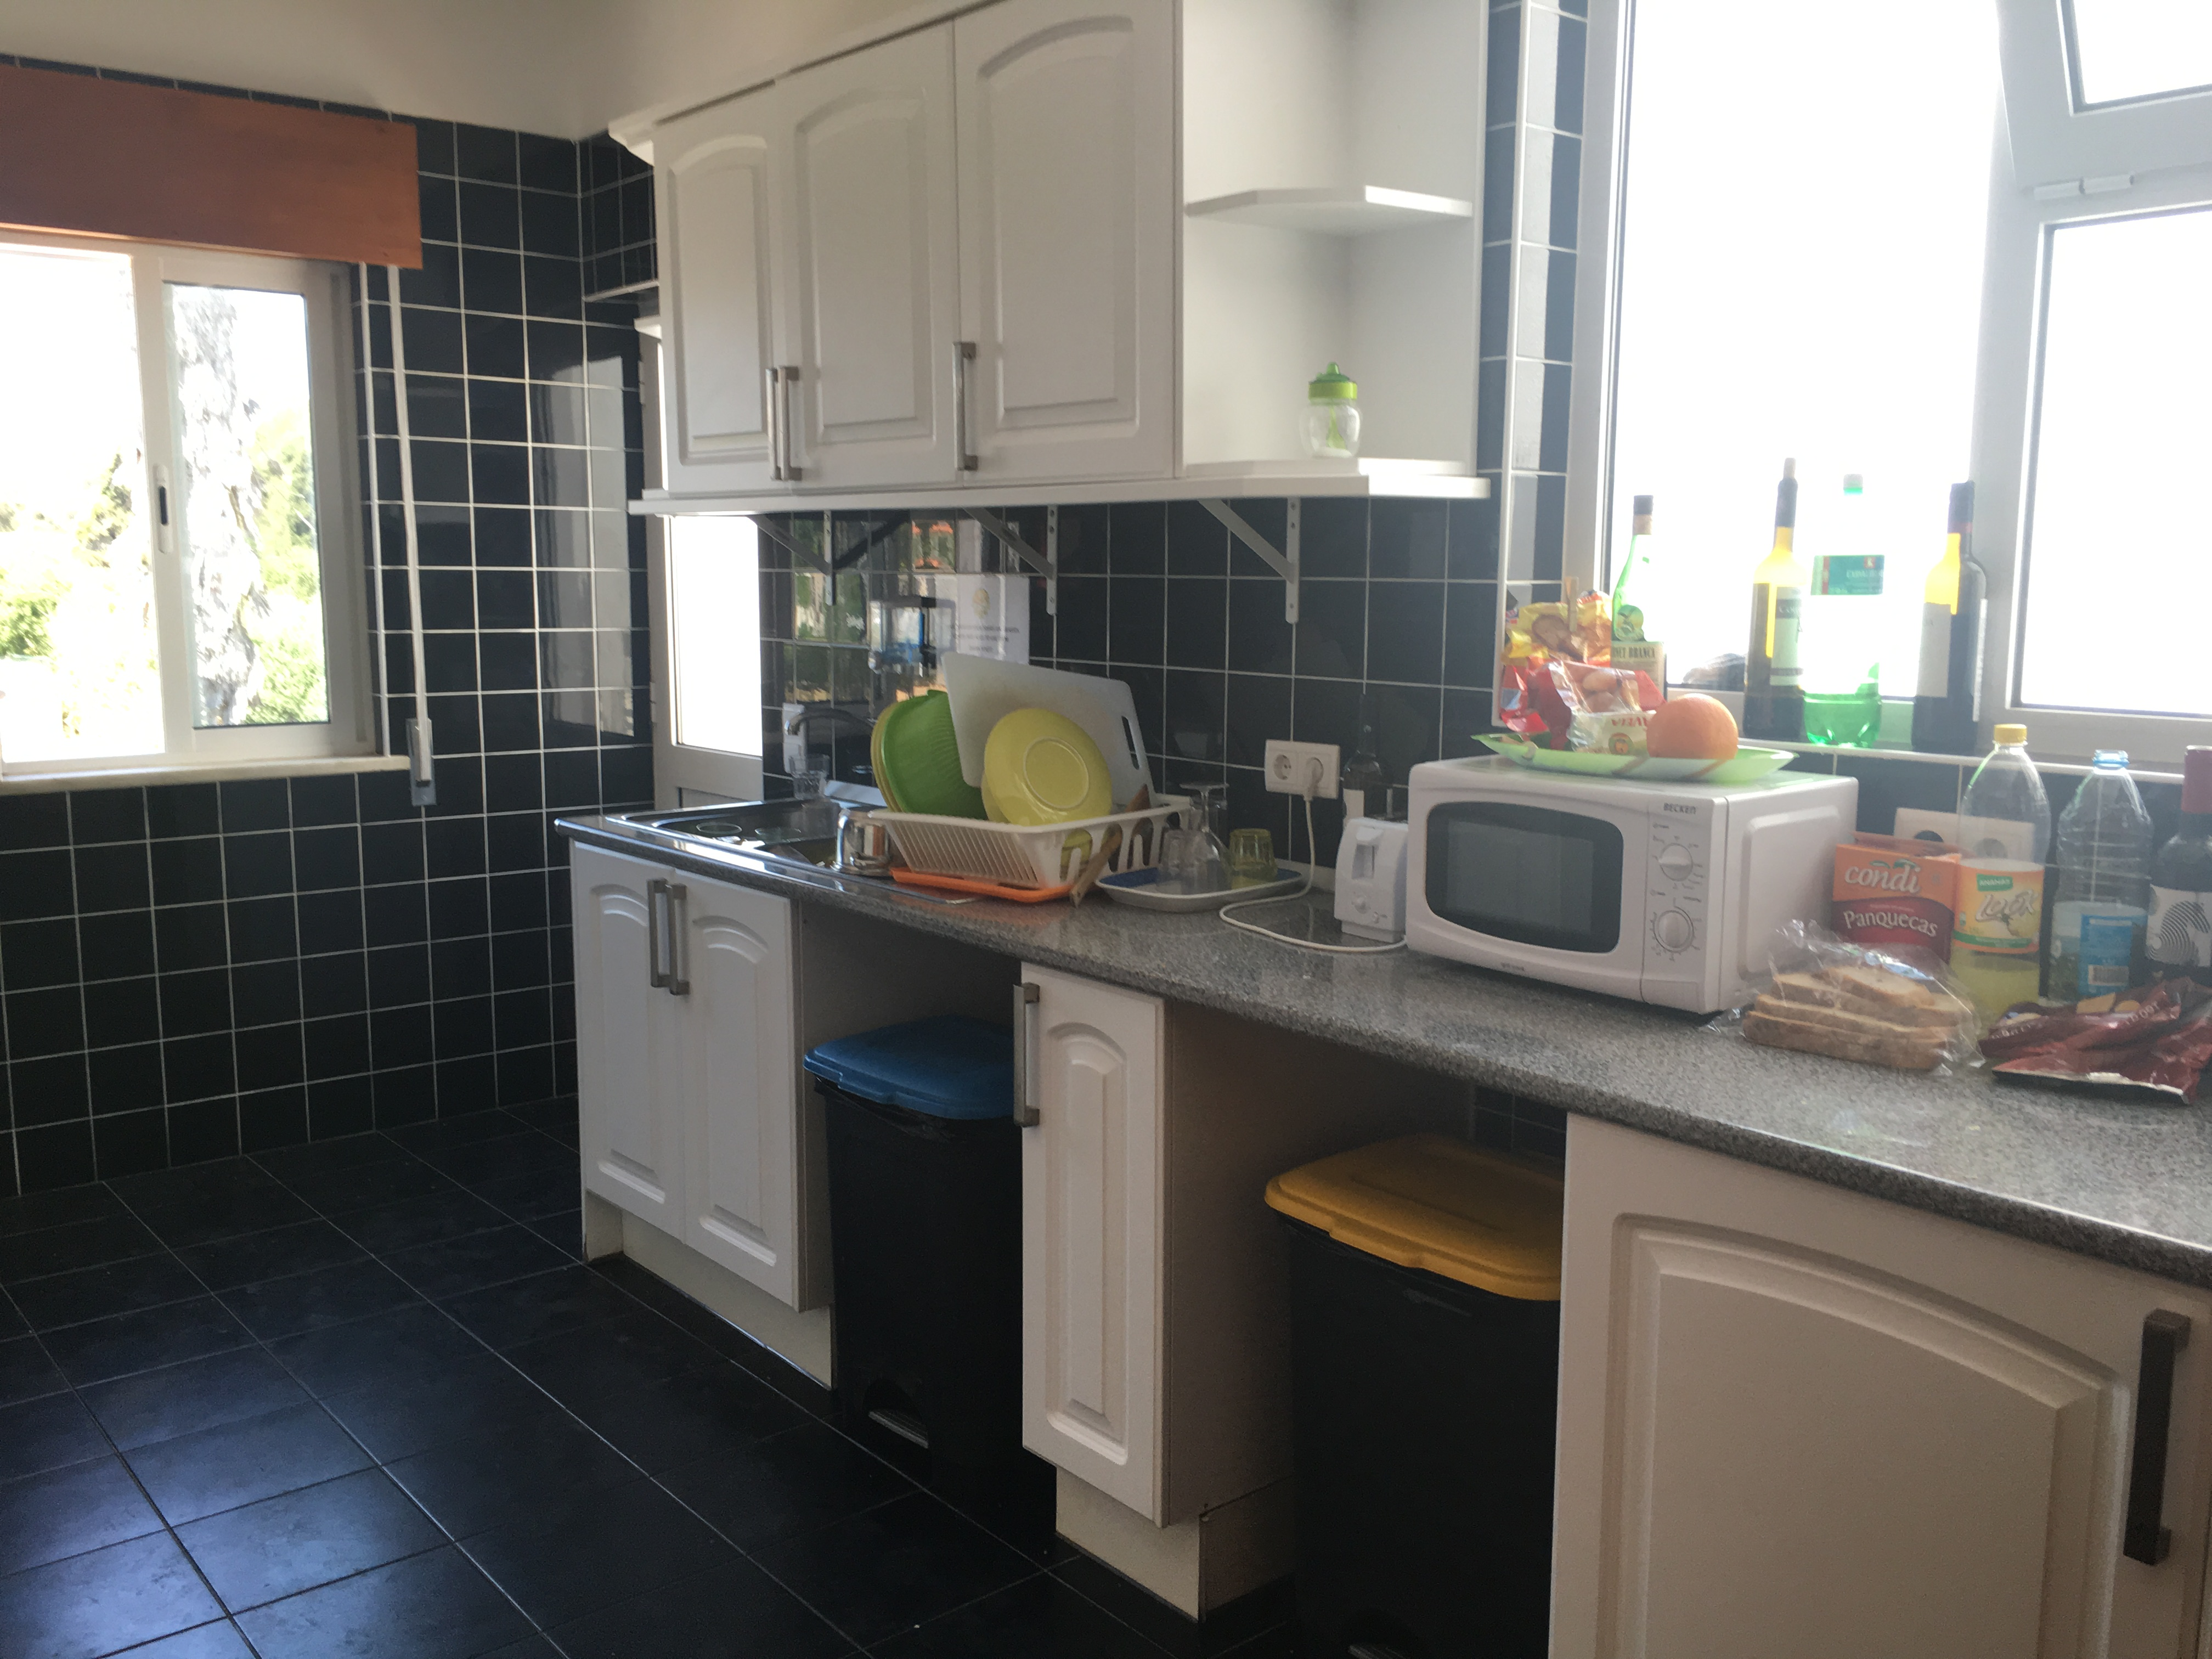 Kitchen at The Big Chill Hostel in lagos in the Algarve, Portugal